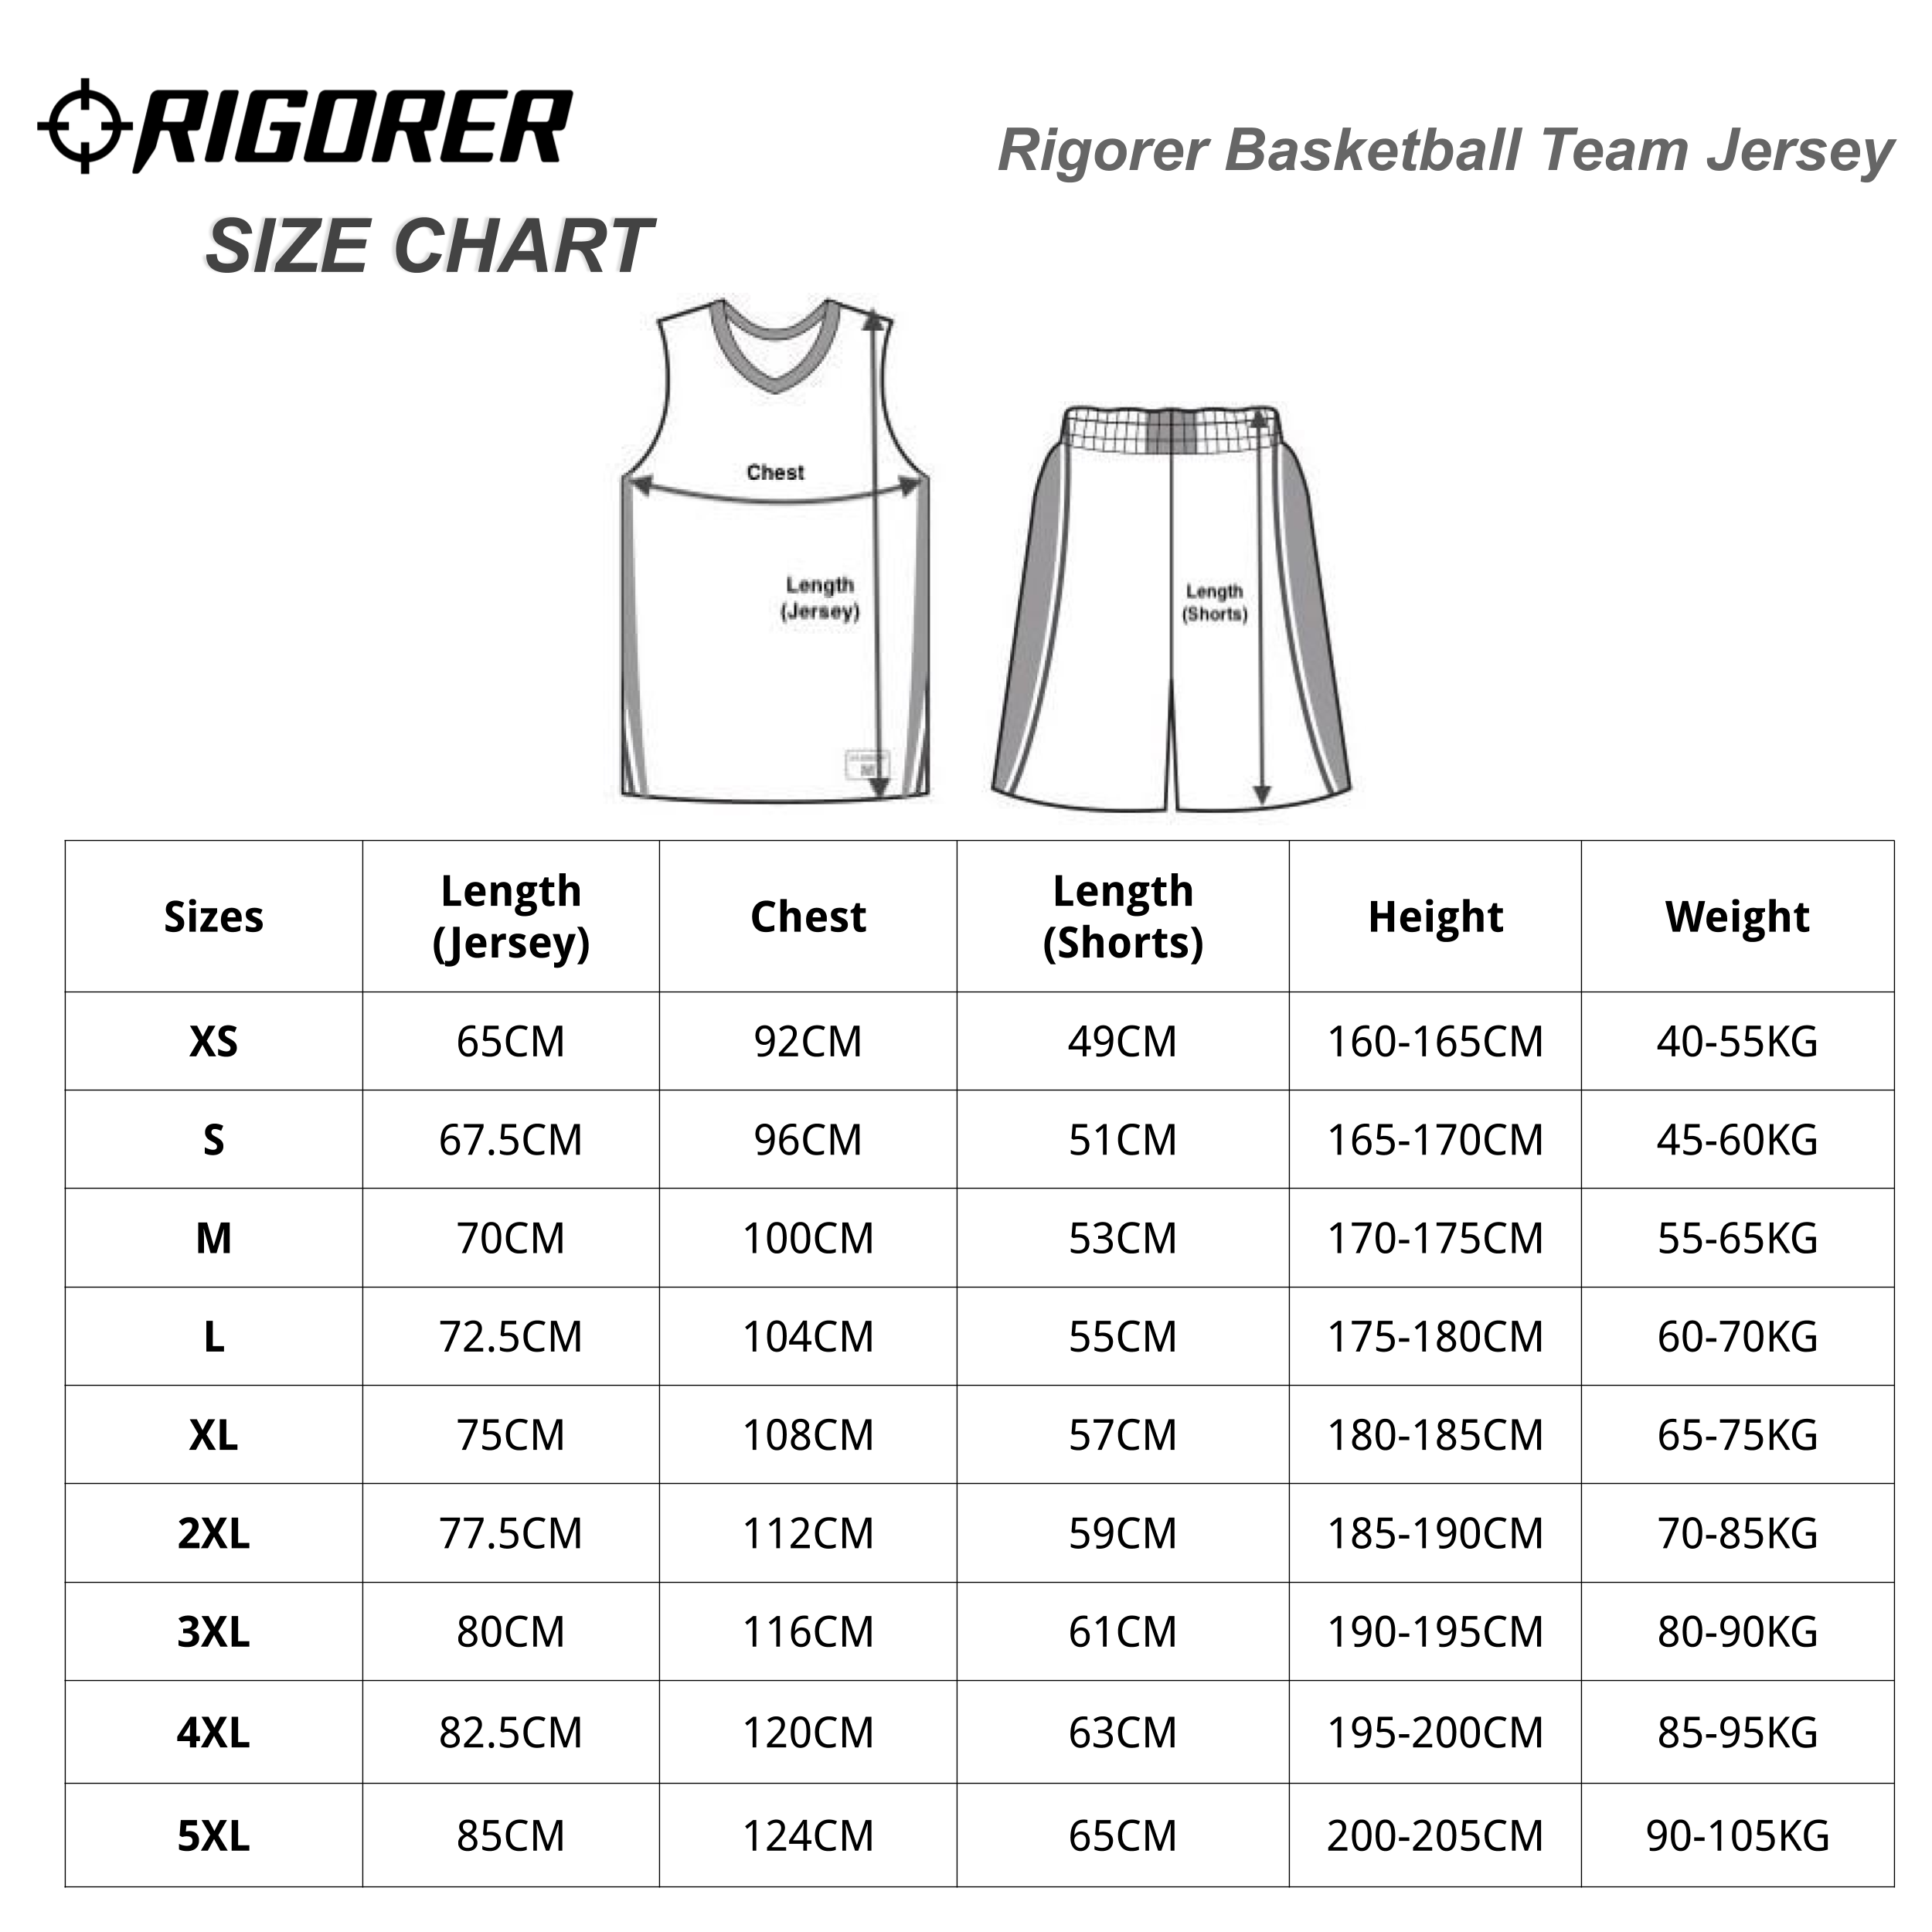 Rigorer Basketball Team Jersey Size Chart SLIM